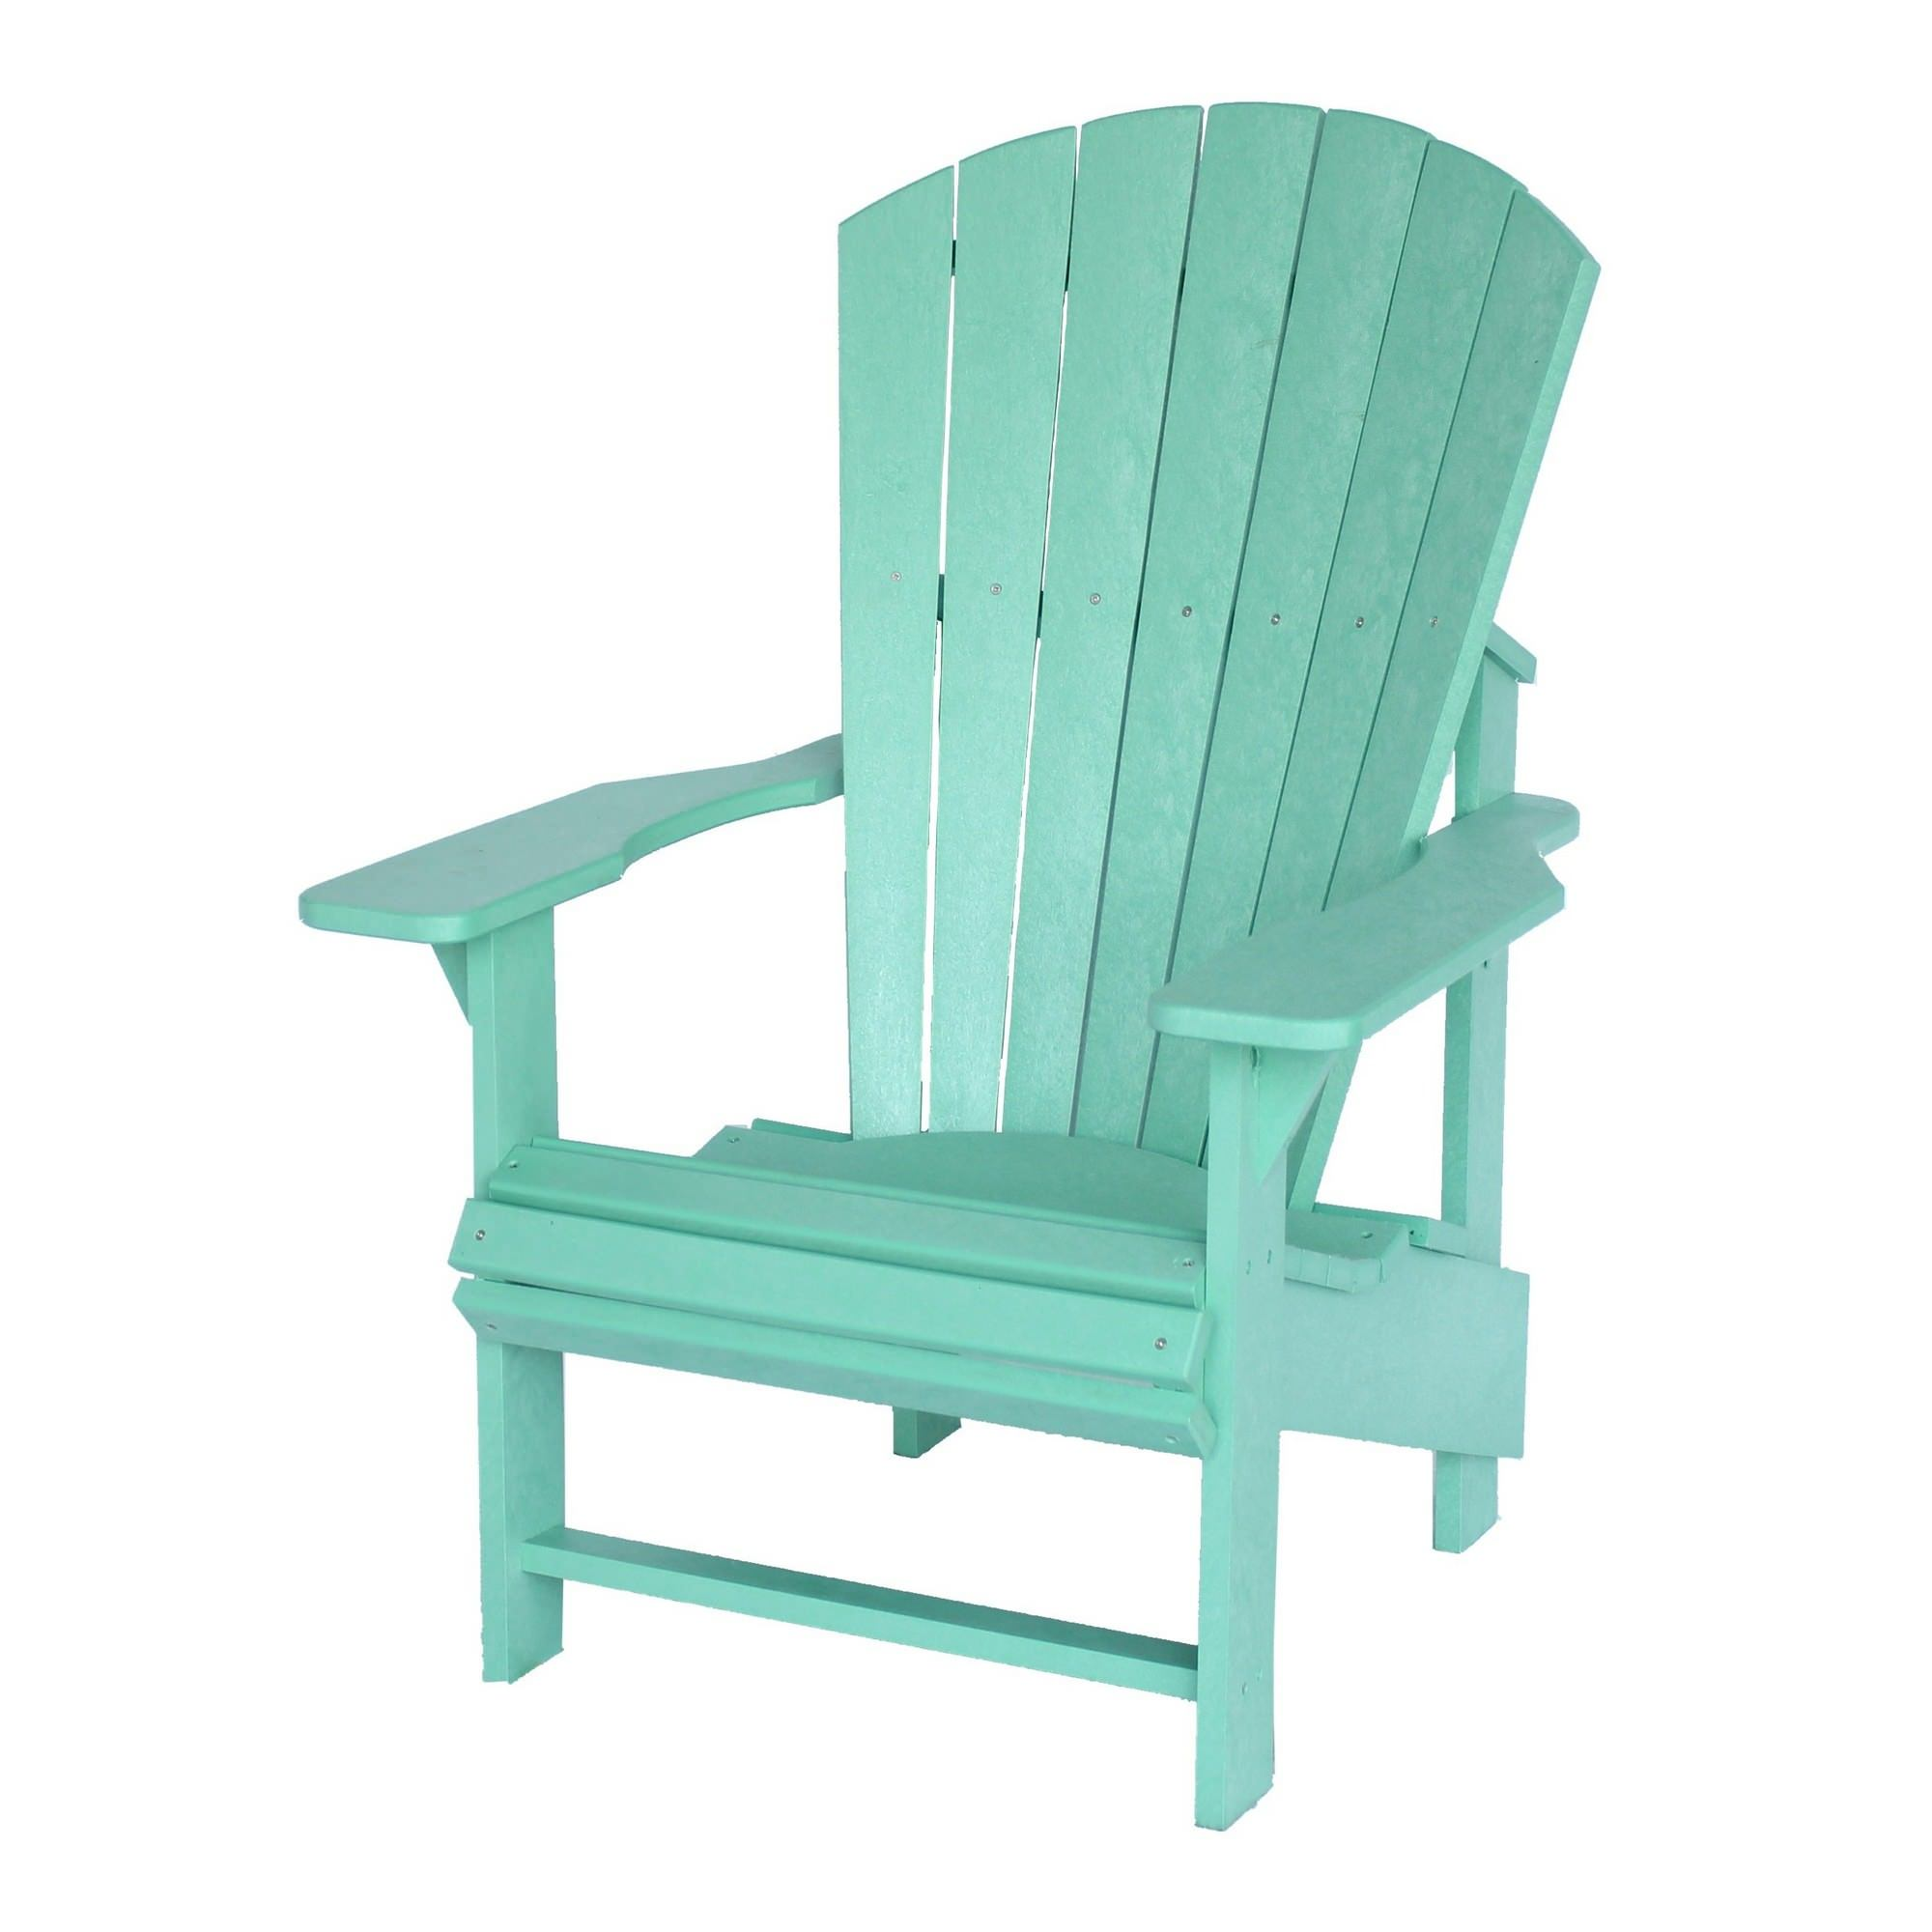 Charmant Mint Green Poly Lumber Adirondack Upright Chair